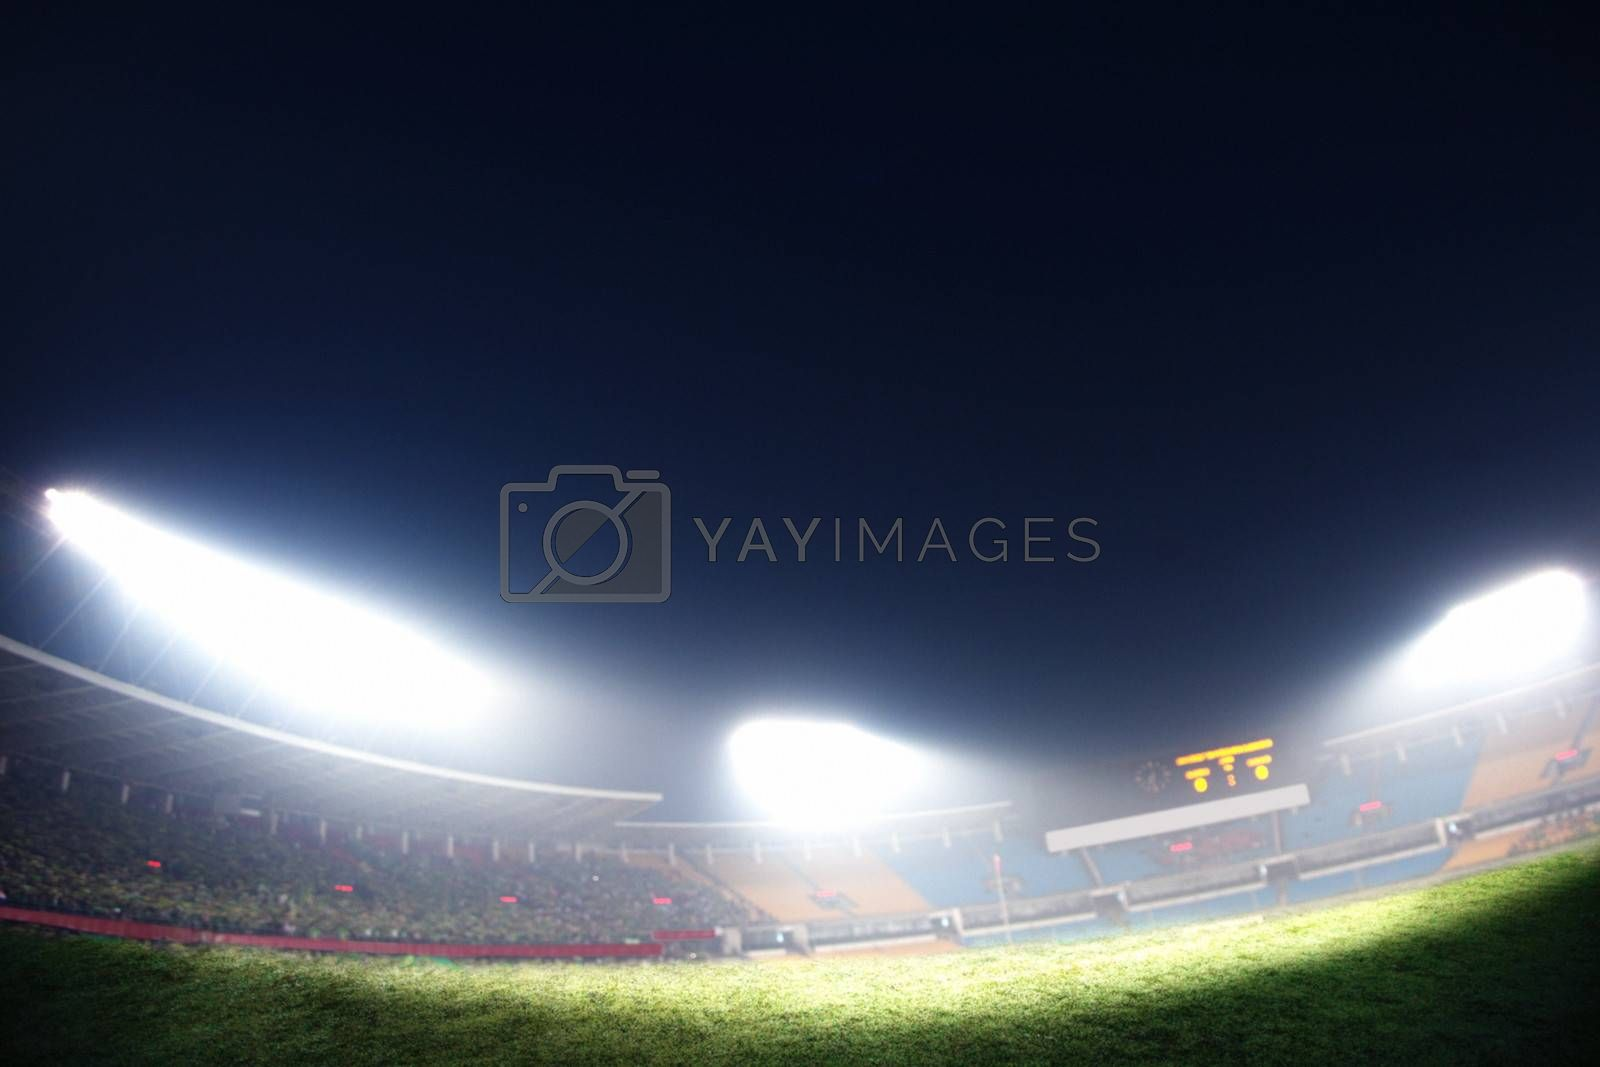 Digital composit of soccer field and night sky by XiXinXing